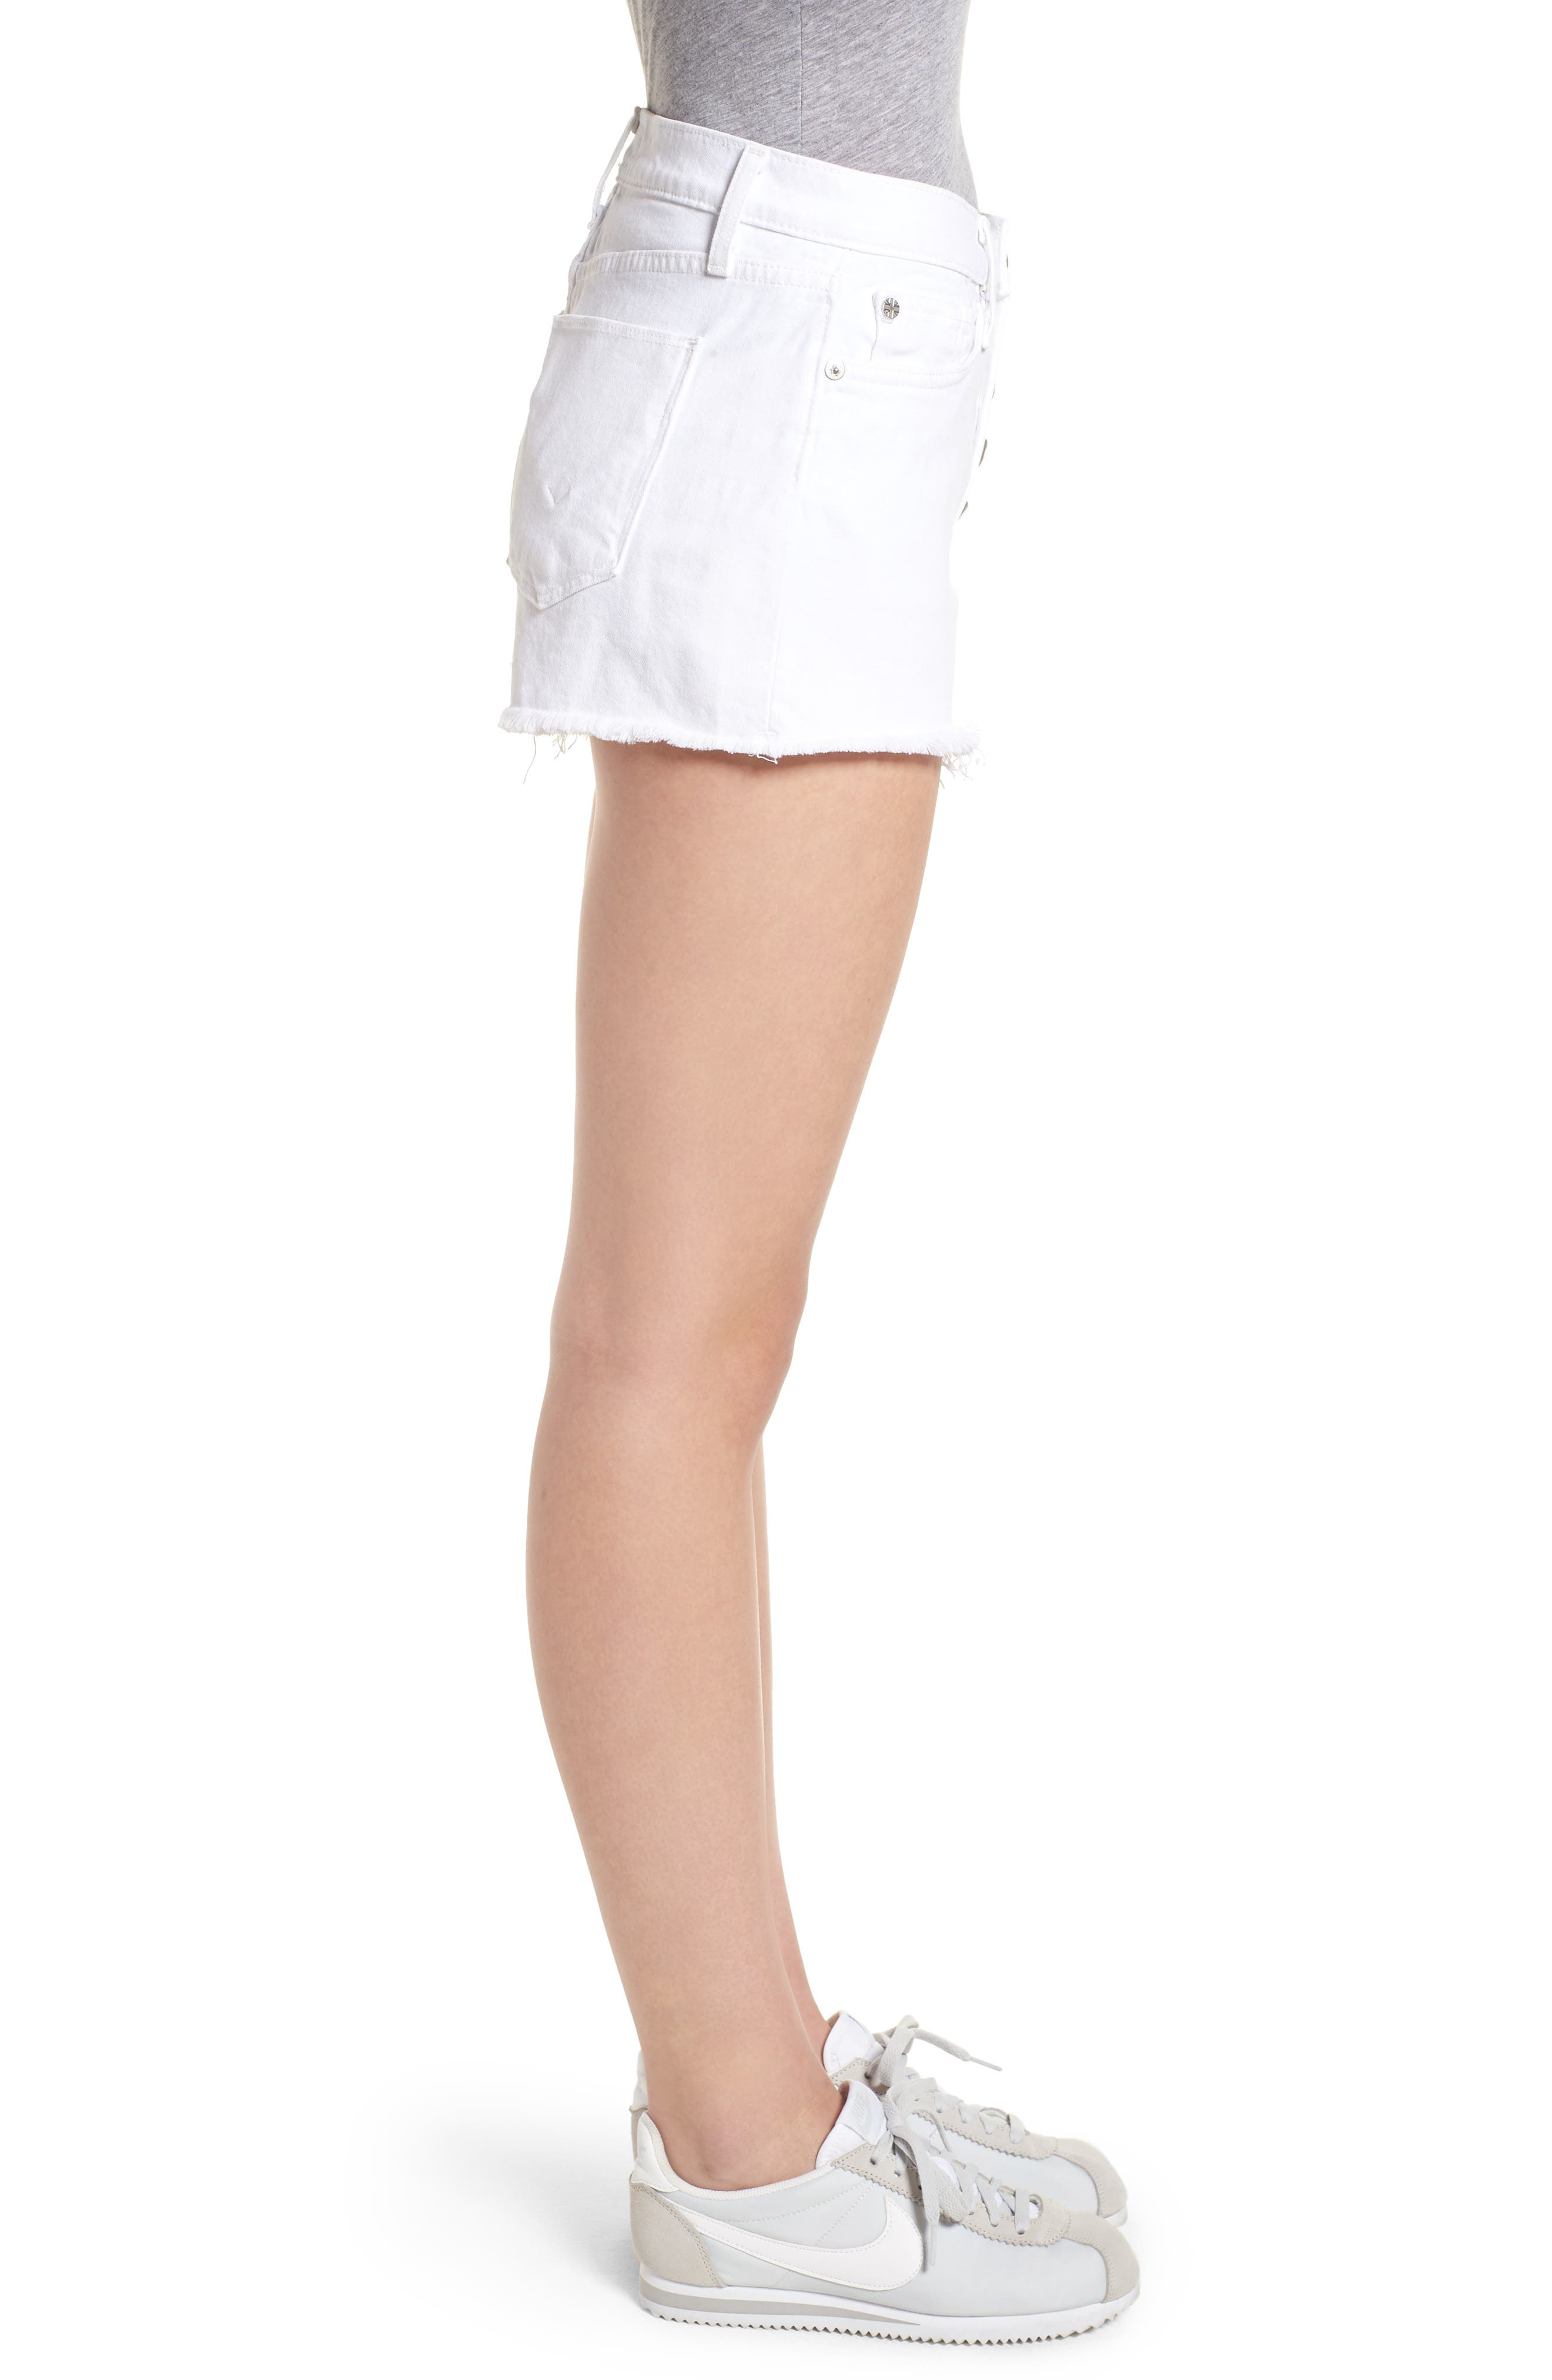 Zoeey Button Fly High Waist Denim Shorts,                             Alternate thumbnail 3, color,                             White